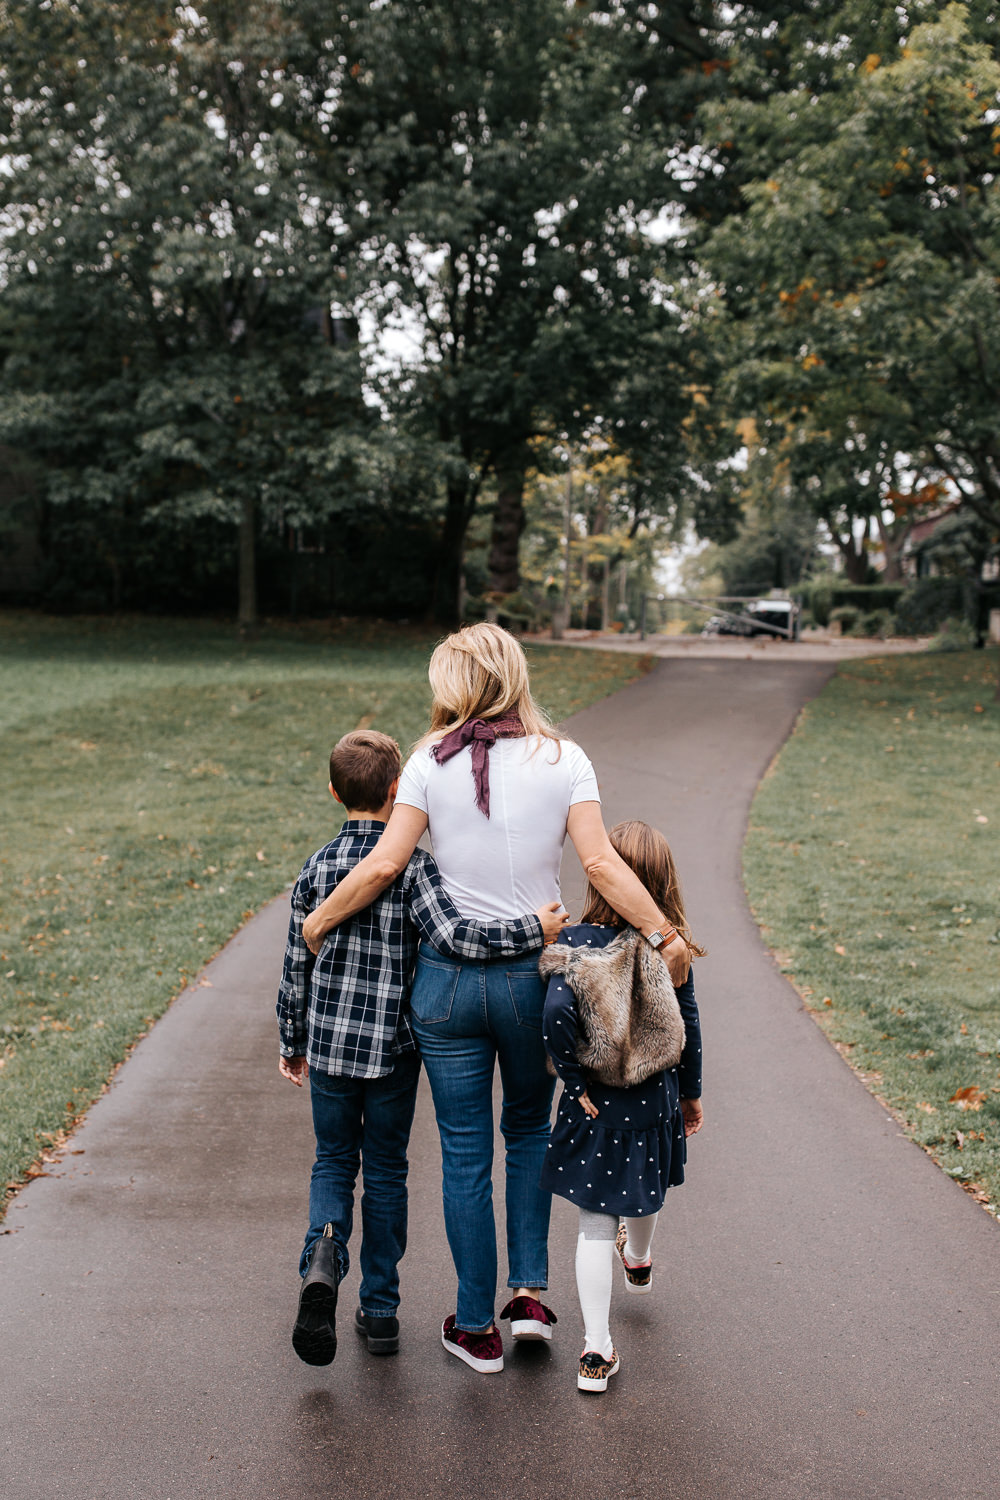 mom walking down paved path at city park, arms around 9 year old son and 7 year old daughter as they stroll -Newmarket Lifestyle Photography